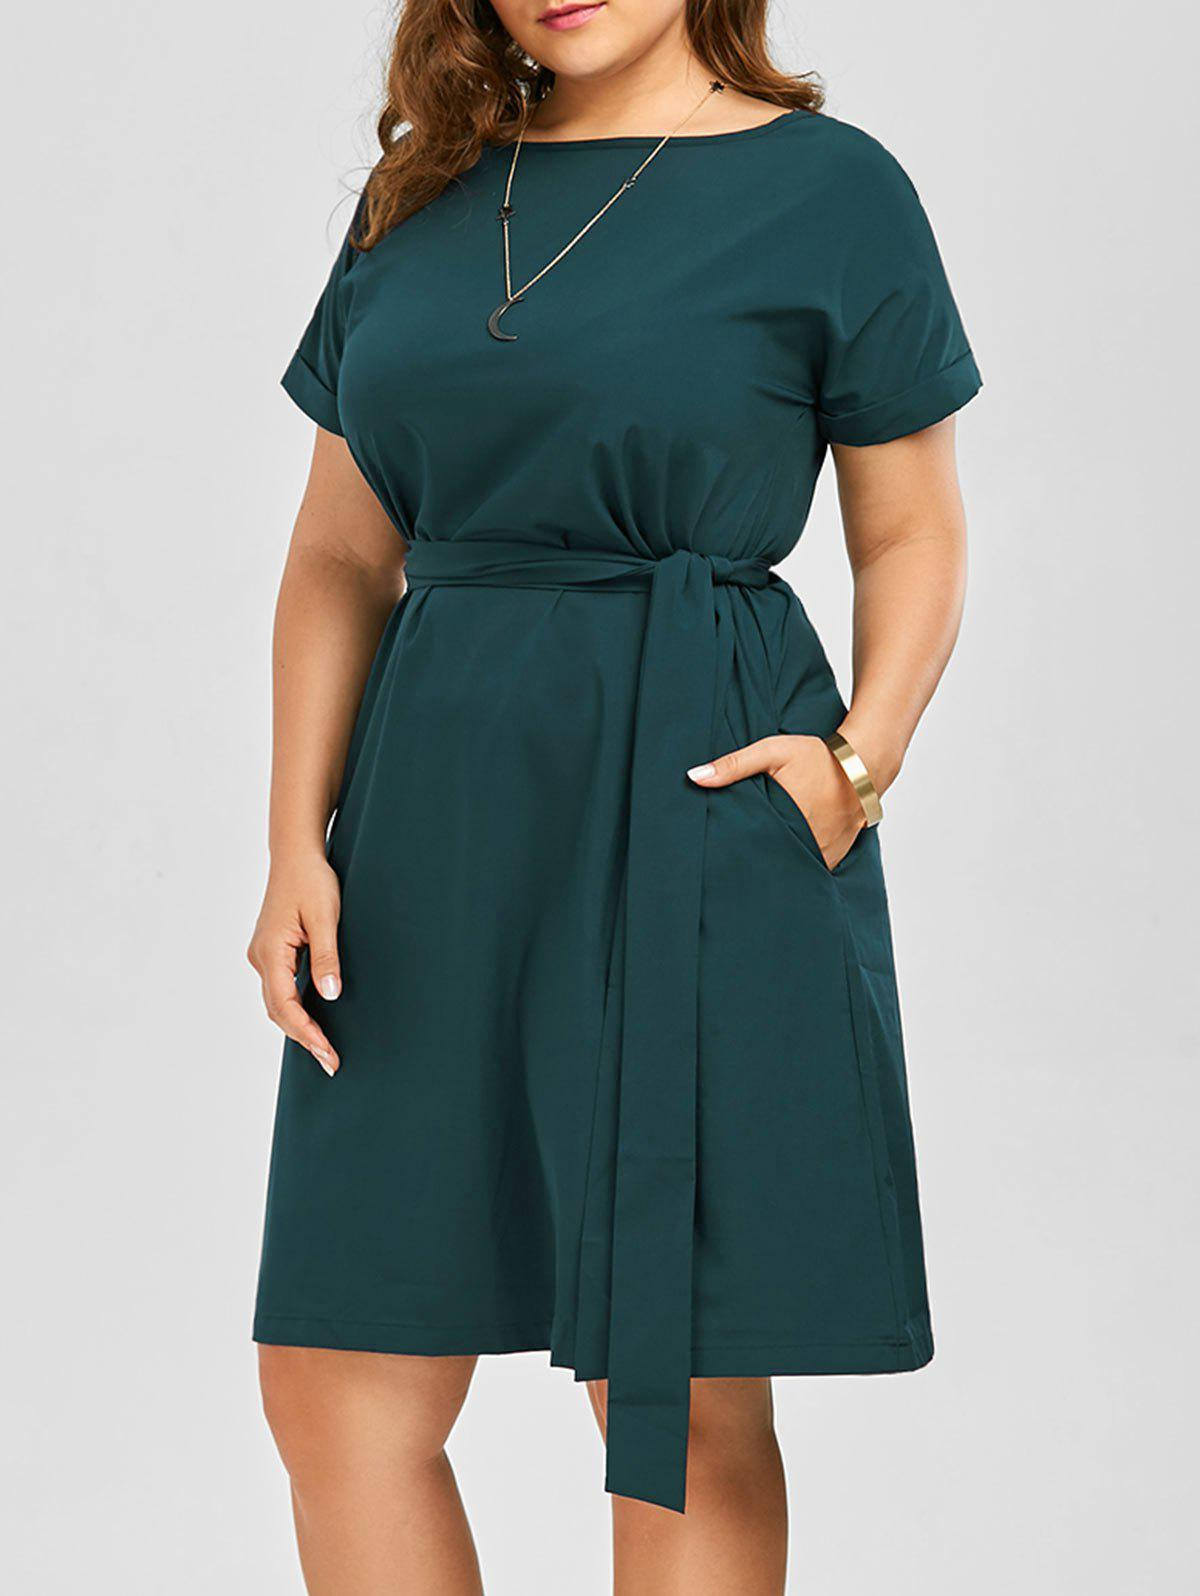 Plus Size Belted Knee Length A Line Dress With PocketWOMEN<br><br>Size: 3XL; Color: GREEN; Style: Work; Material: Cotton Blend,Polyester; Silhouette: A-Line; Dresses Length: Knee-Length; Neckline: Round Collar; Sleeve Length: Short Sleeves; Embellishment: Pockets; Pattern Type: Solid Color; With Belt: Yes; Season: Spring,Summer; Weight: 0.3500kg; Package Contents: 1 x Dress 1 x Belt;